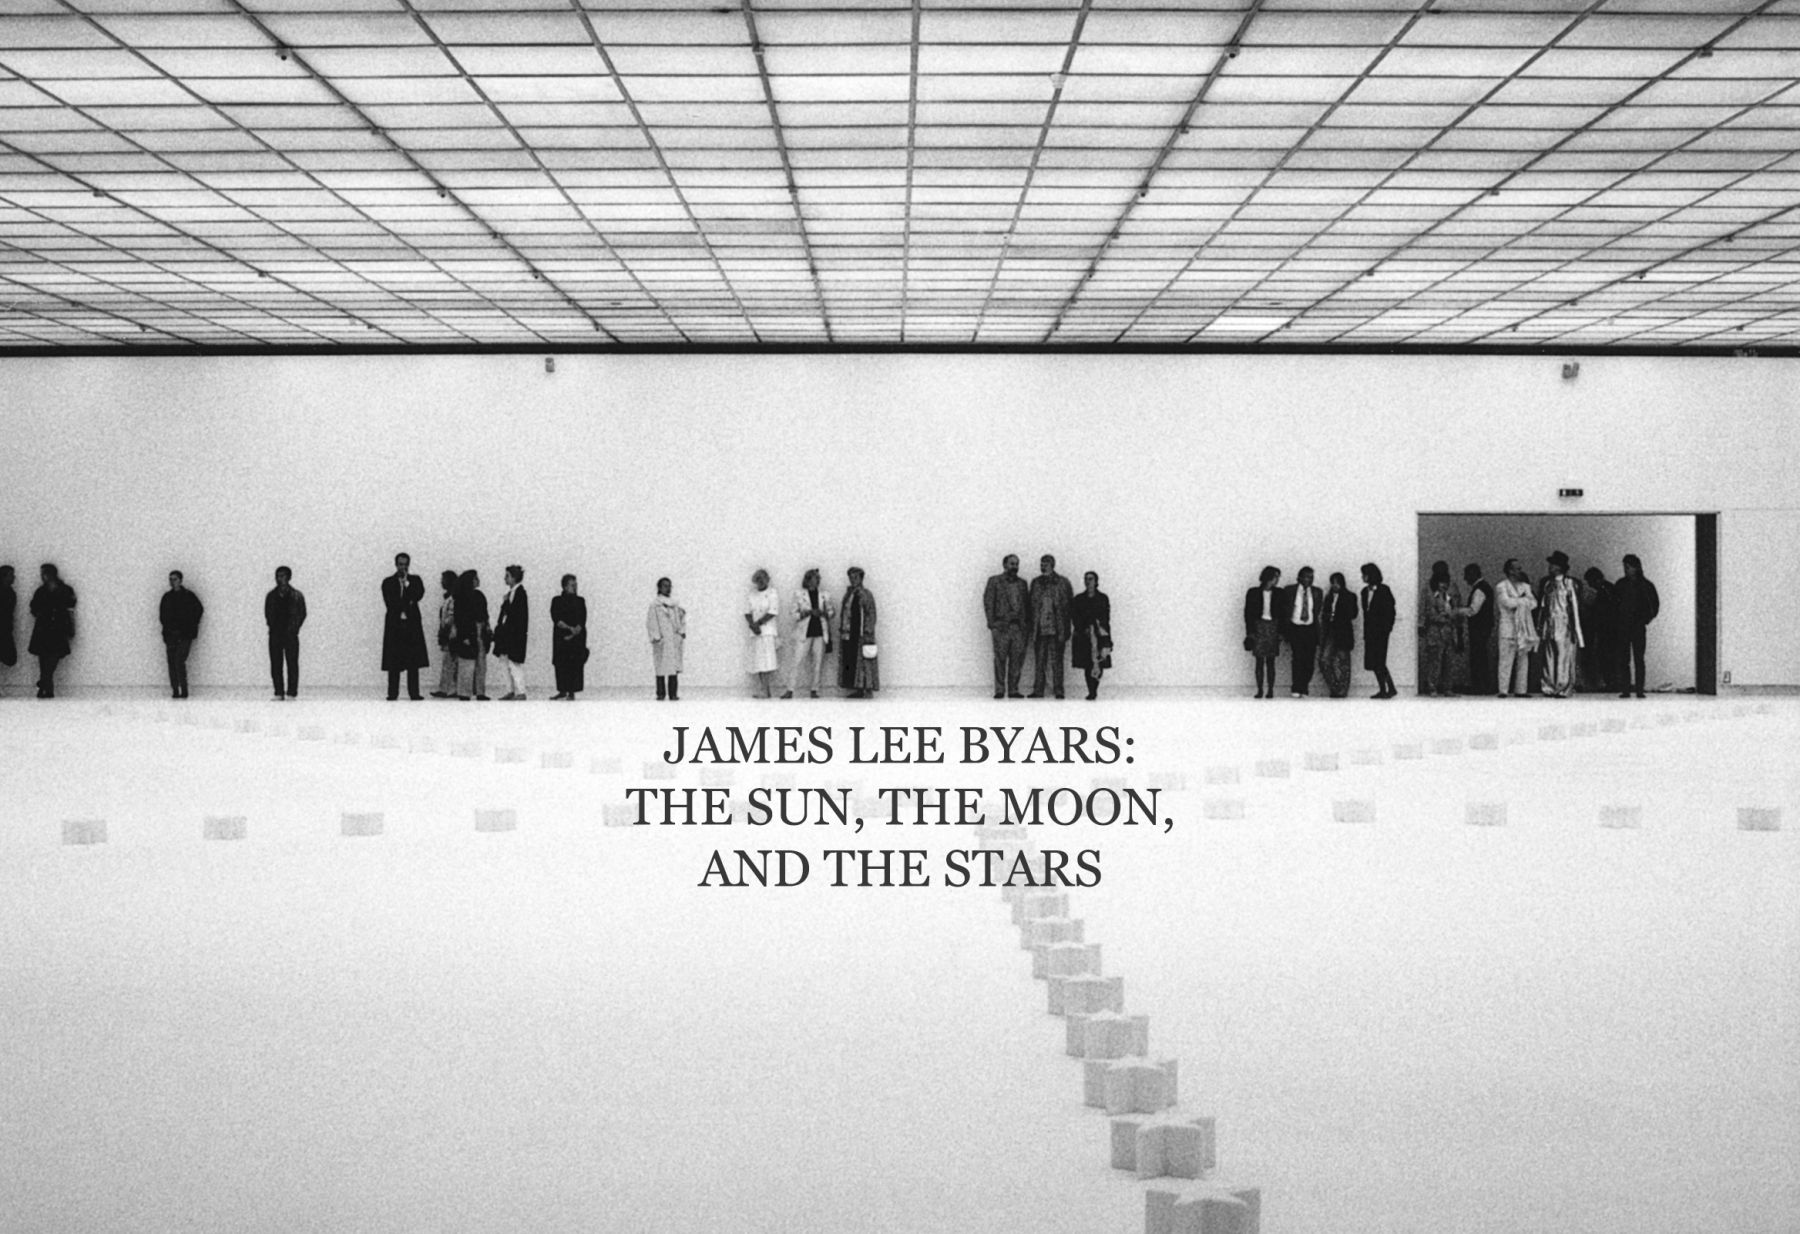 James Lee Byars: The Sun, the Moon, and the Stars